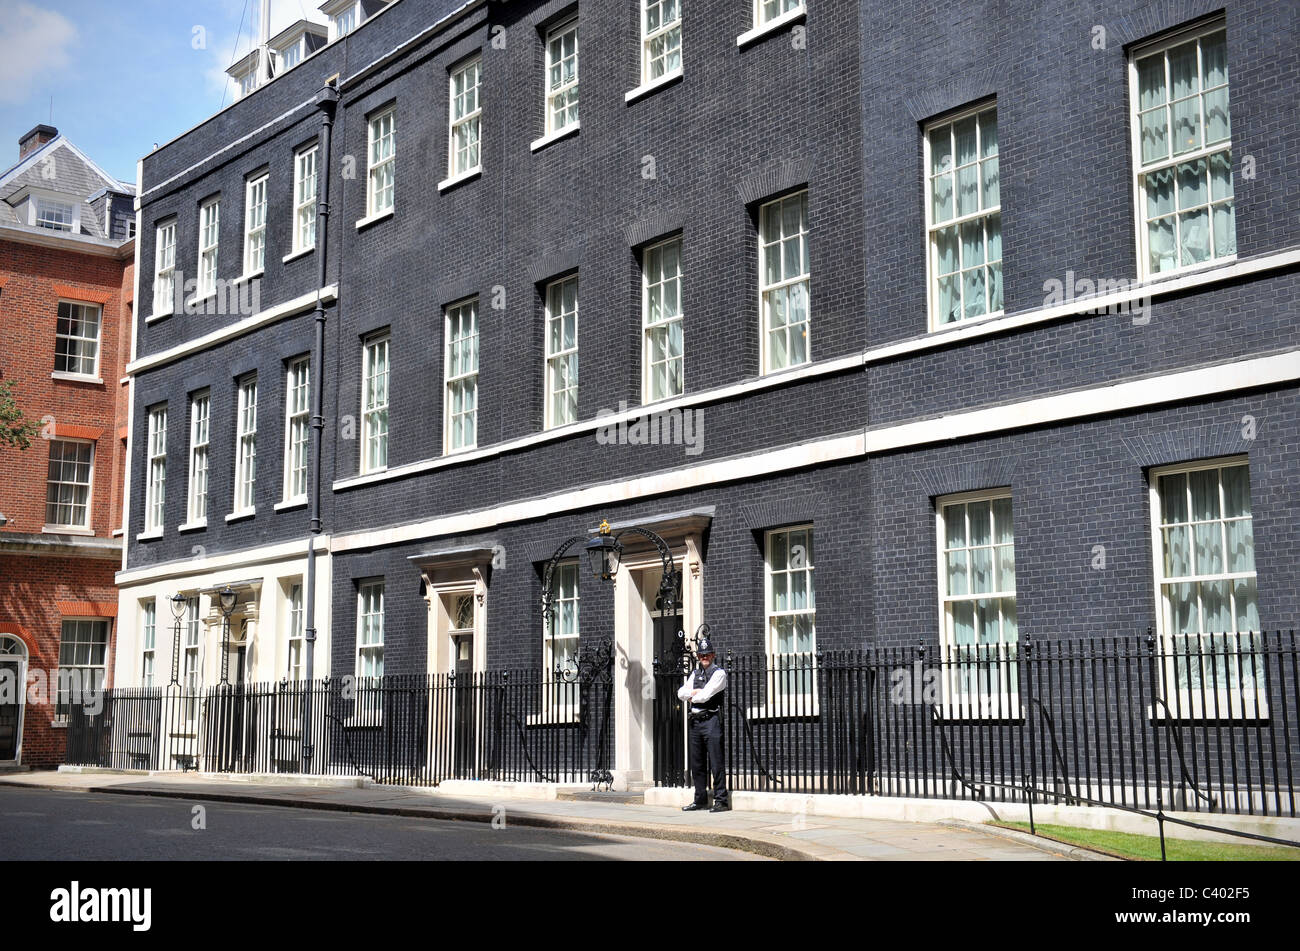 10 downing street in london the official residence of the prime stockfoto lizenzfreies bild. Black Bedroom Furniture Sets. Home Design Ideas